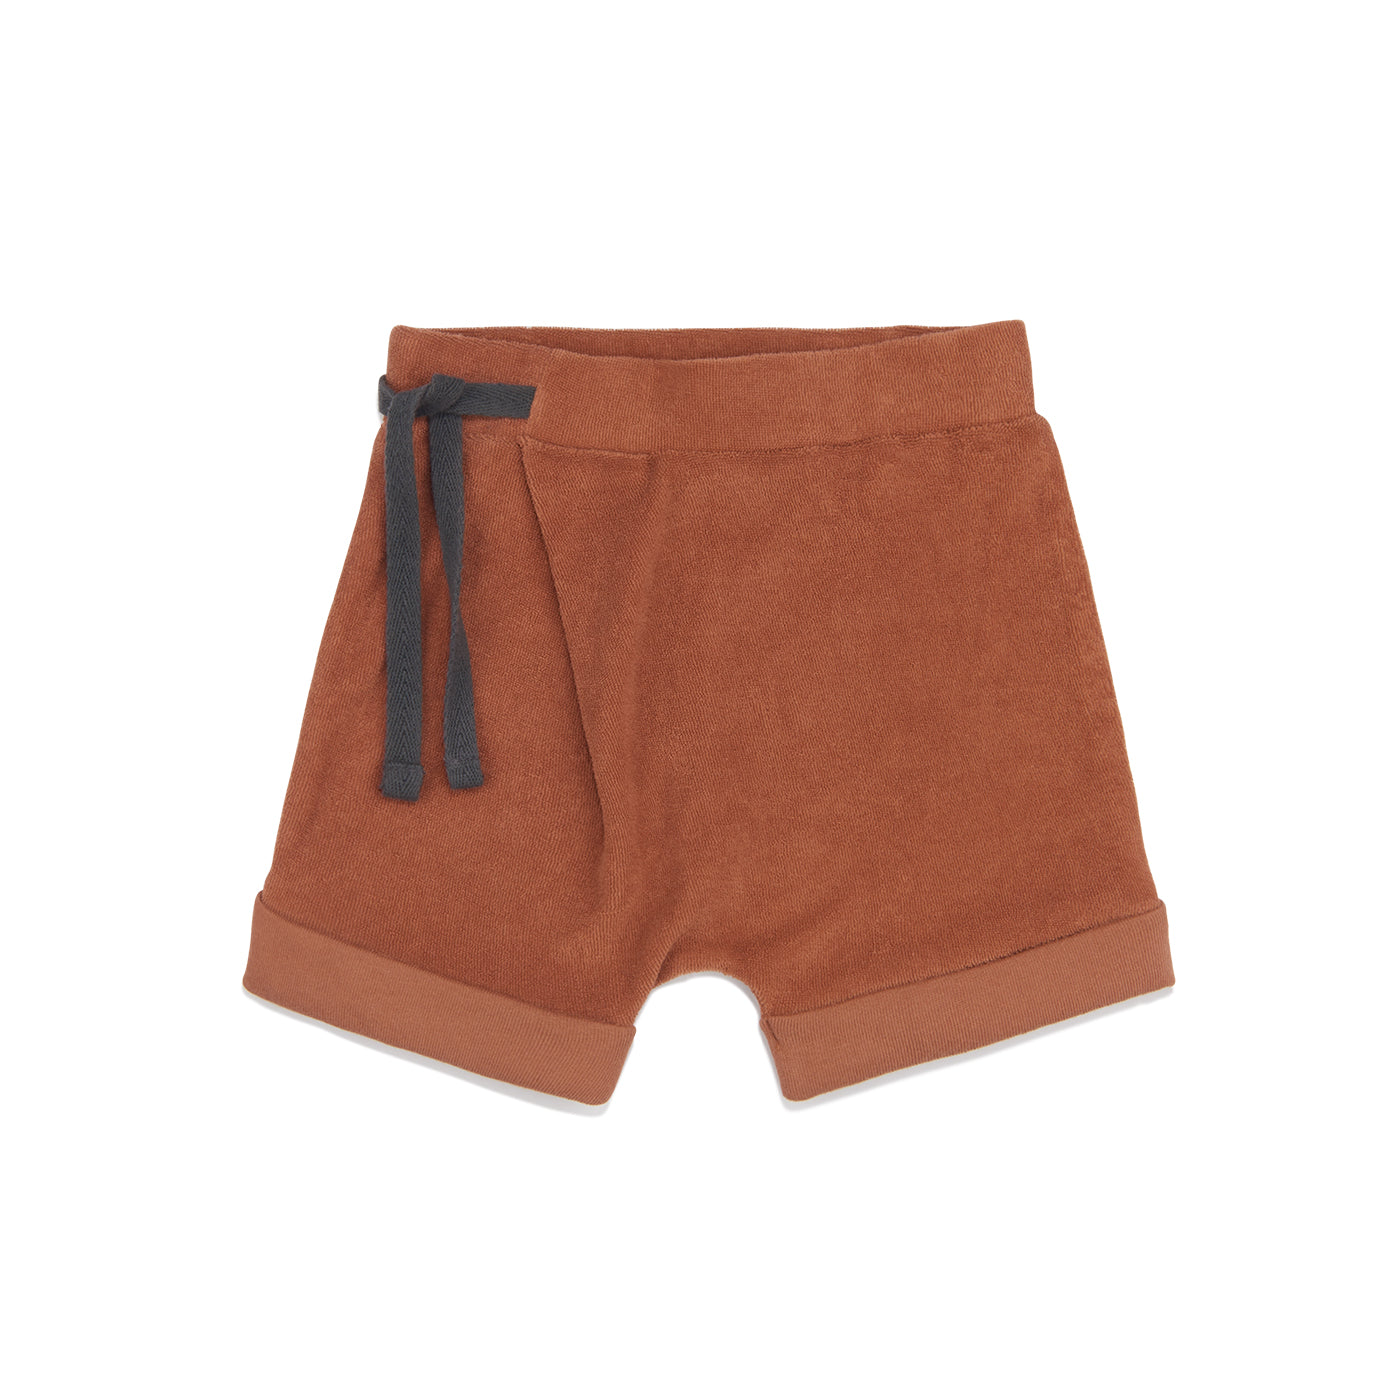 Frotté harem shorts in burnt clay